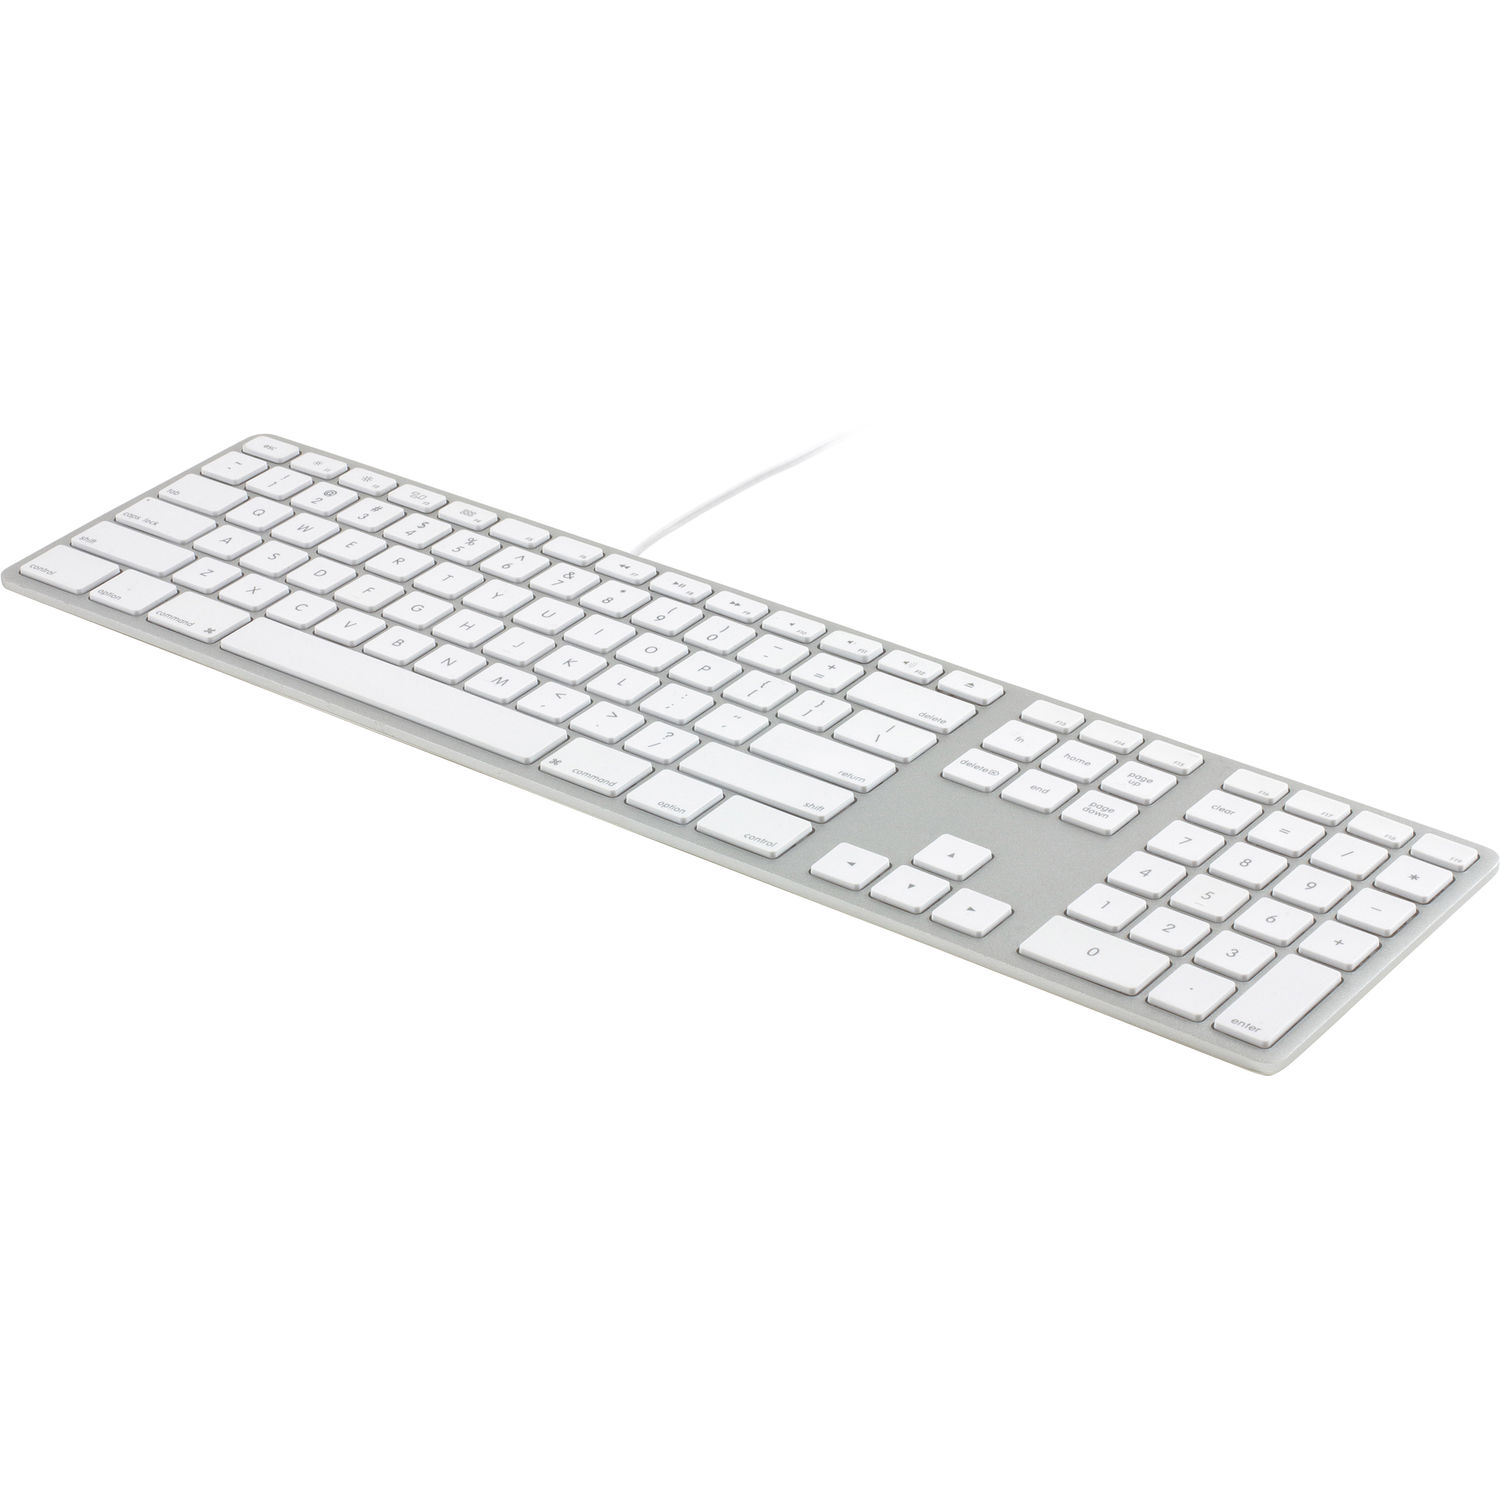 Matias Wired Aluminum Keyboard for Mac (Silver) FK318S B&H Photo